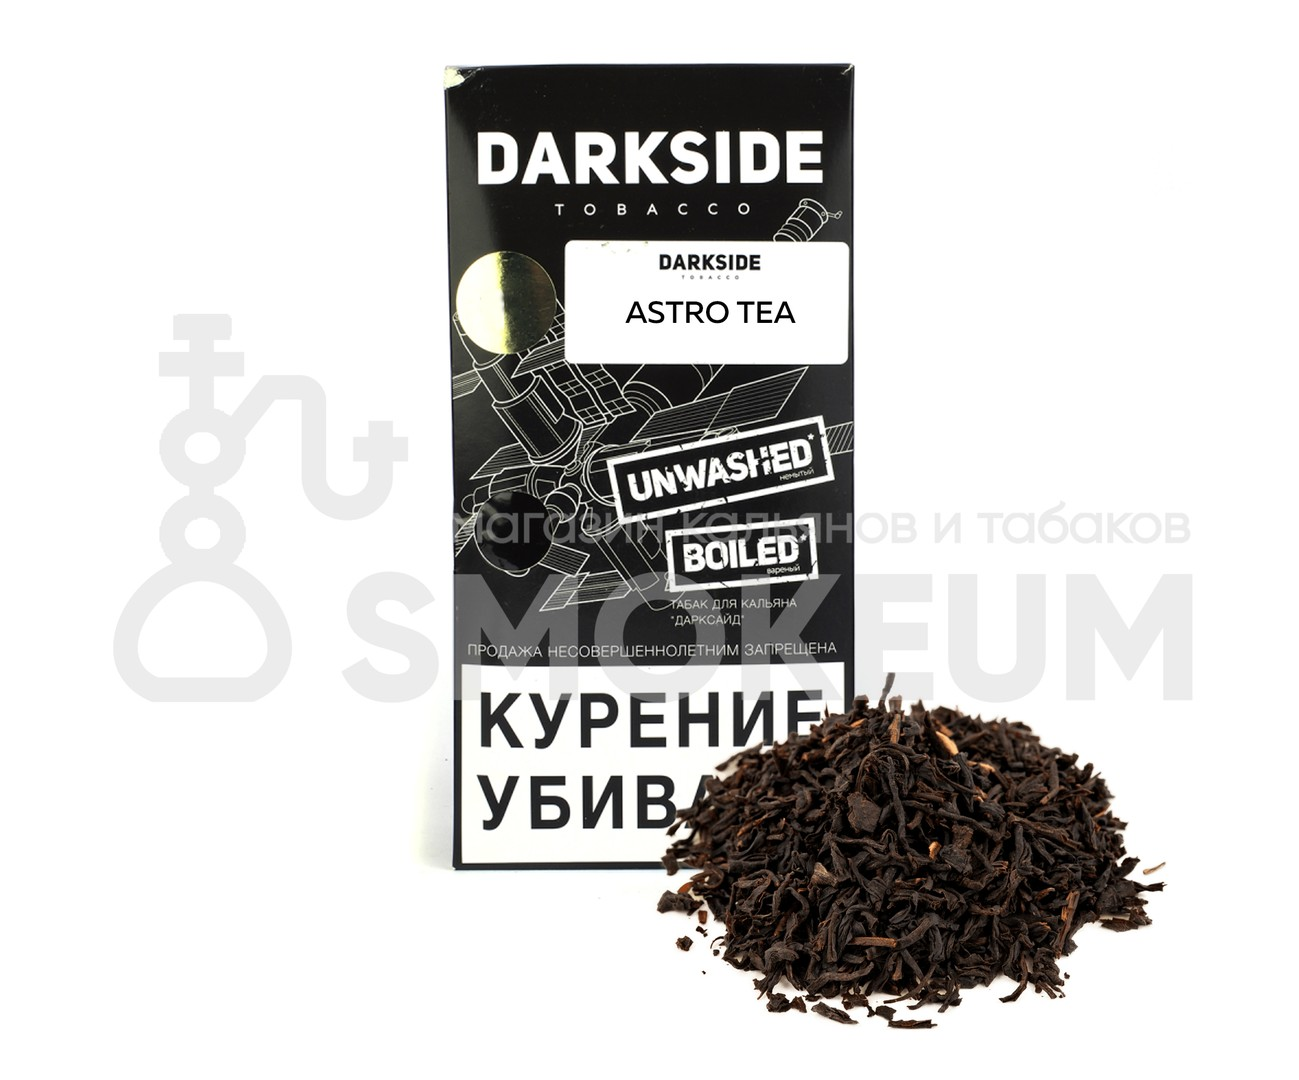 Табак Darkside (Soft) - Astro Tea (Зеленый чай) 250 гр